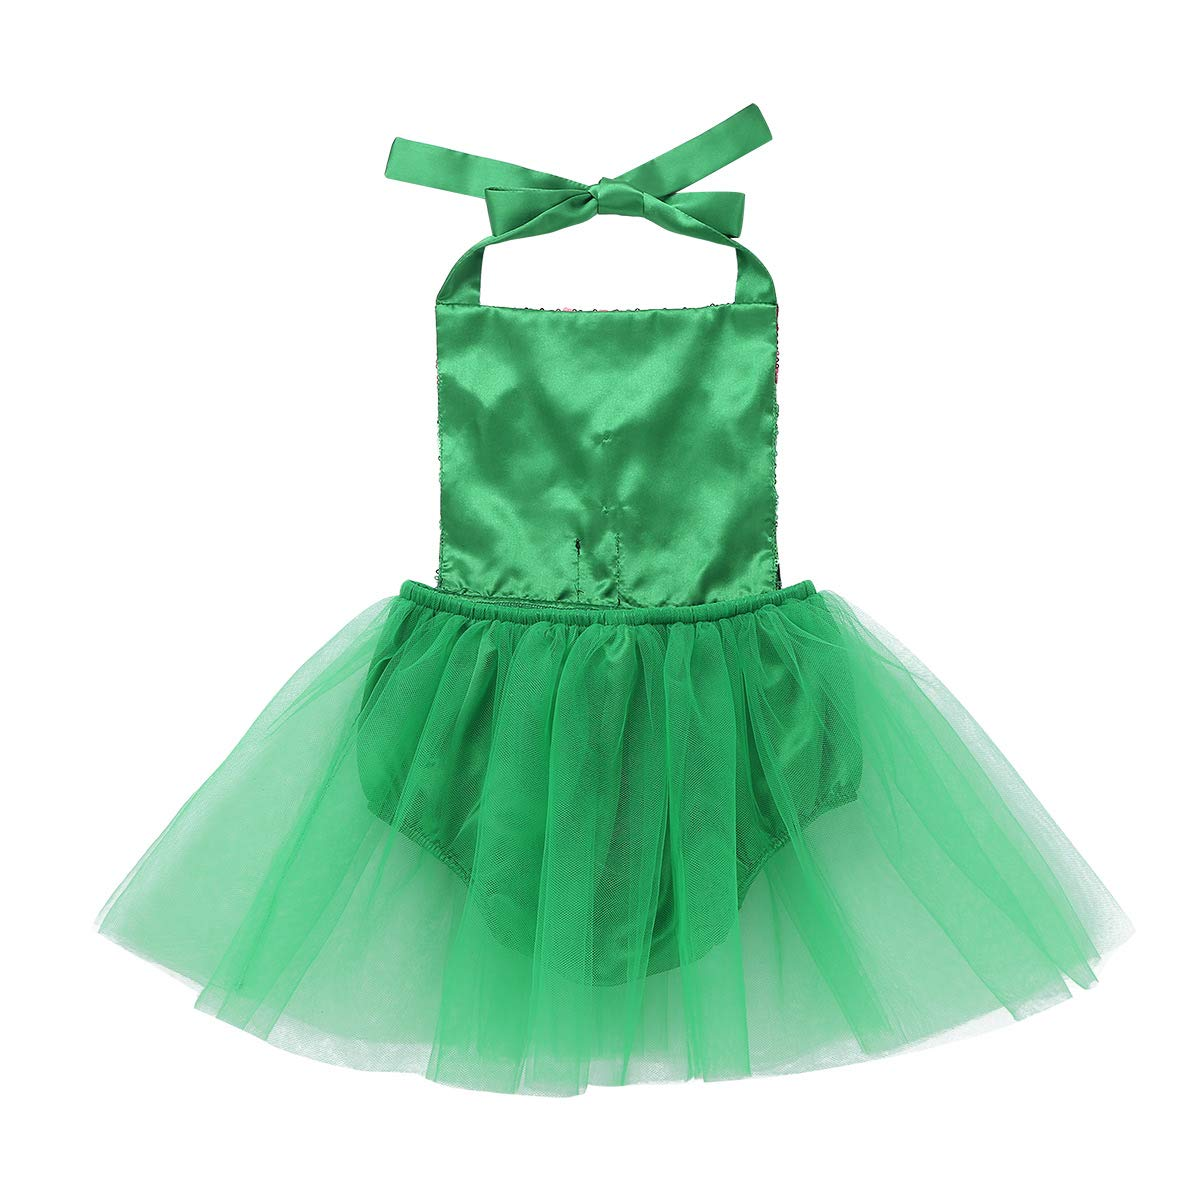 TiaoBug Infant Baby Girls Christmas Elf Costume Outfit Santa Little Helper Halter Tutu Romper Jumpsuit Green 2-3 Years